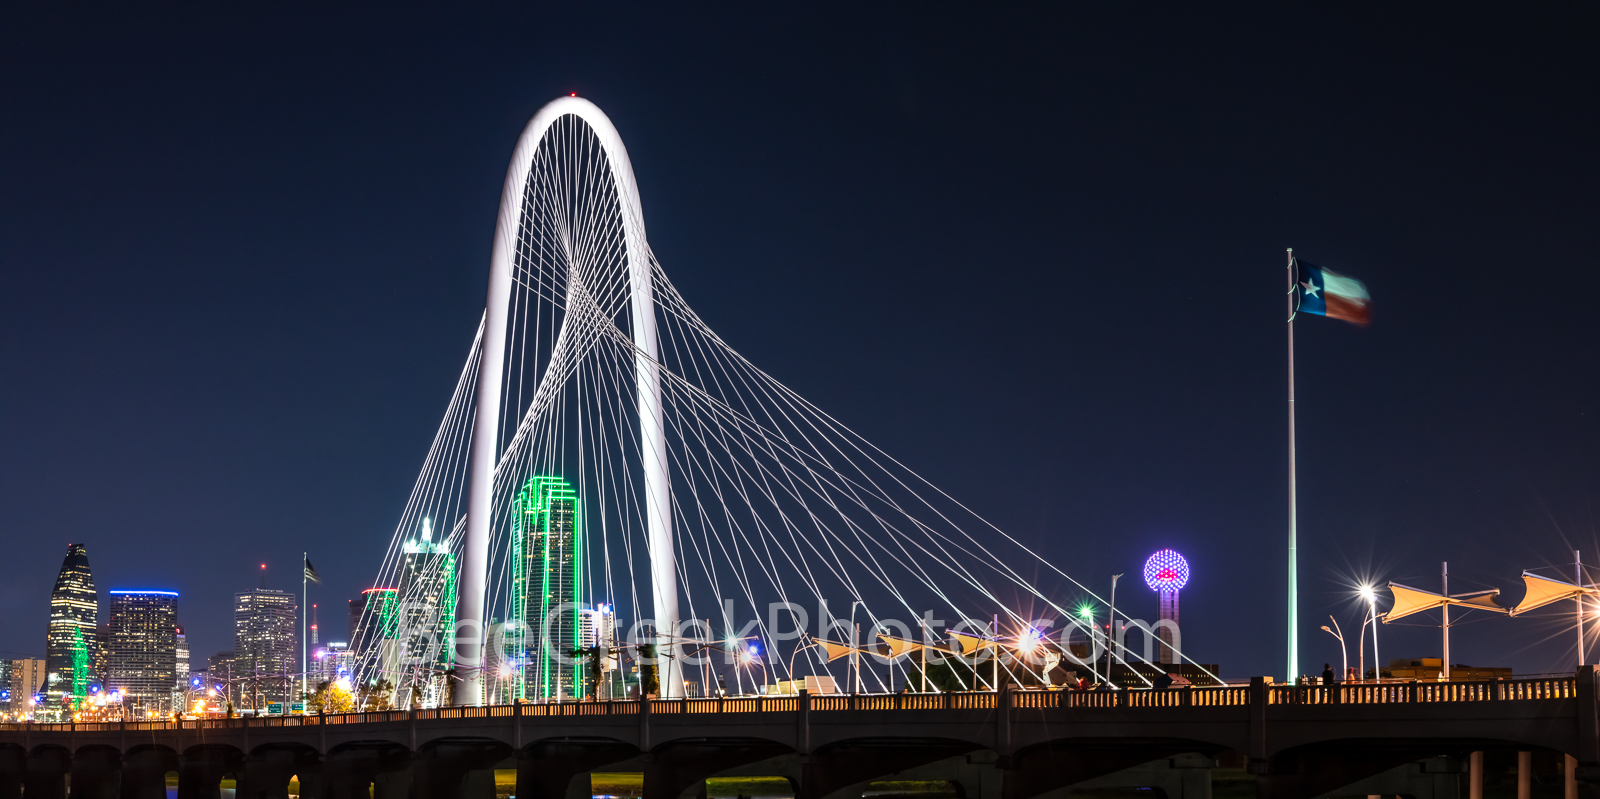 Margaret Hunt Hill Bridge, night, dallas skyline, Dallas pictures, continental bridge, ron kirk bridge, hunt hill bridge, pedestrian bridge, Reunion Tower, bank of america, image of dallas, dallas pho